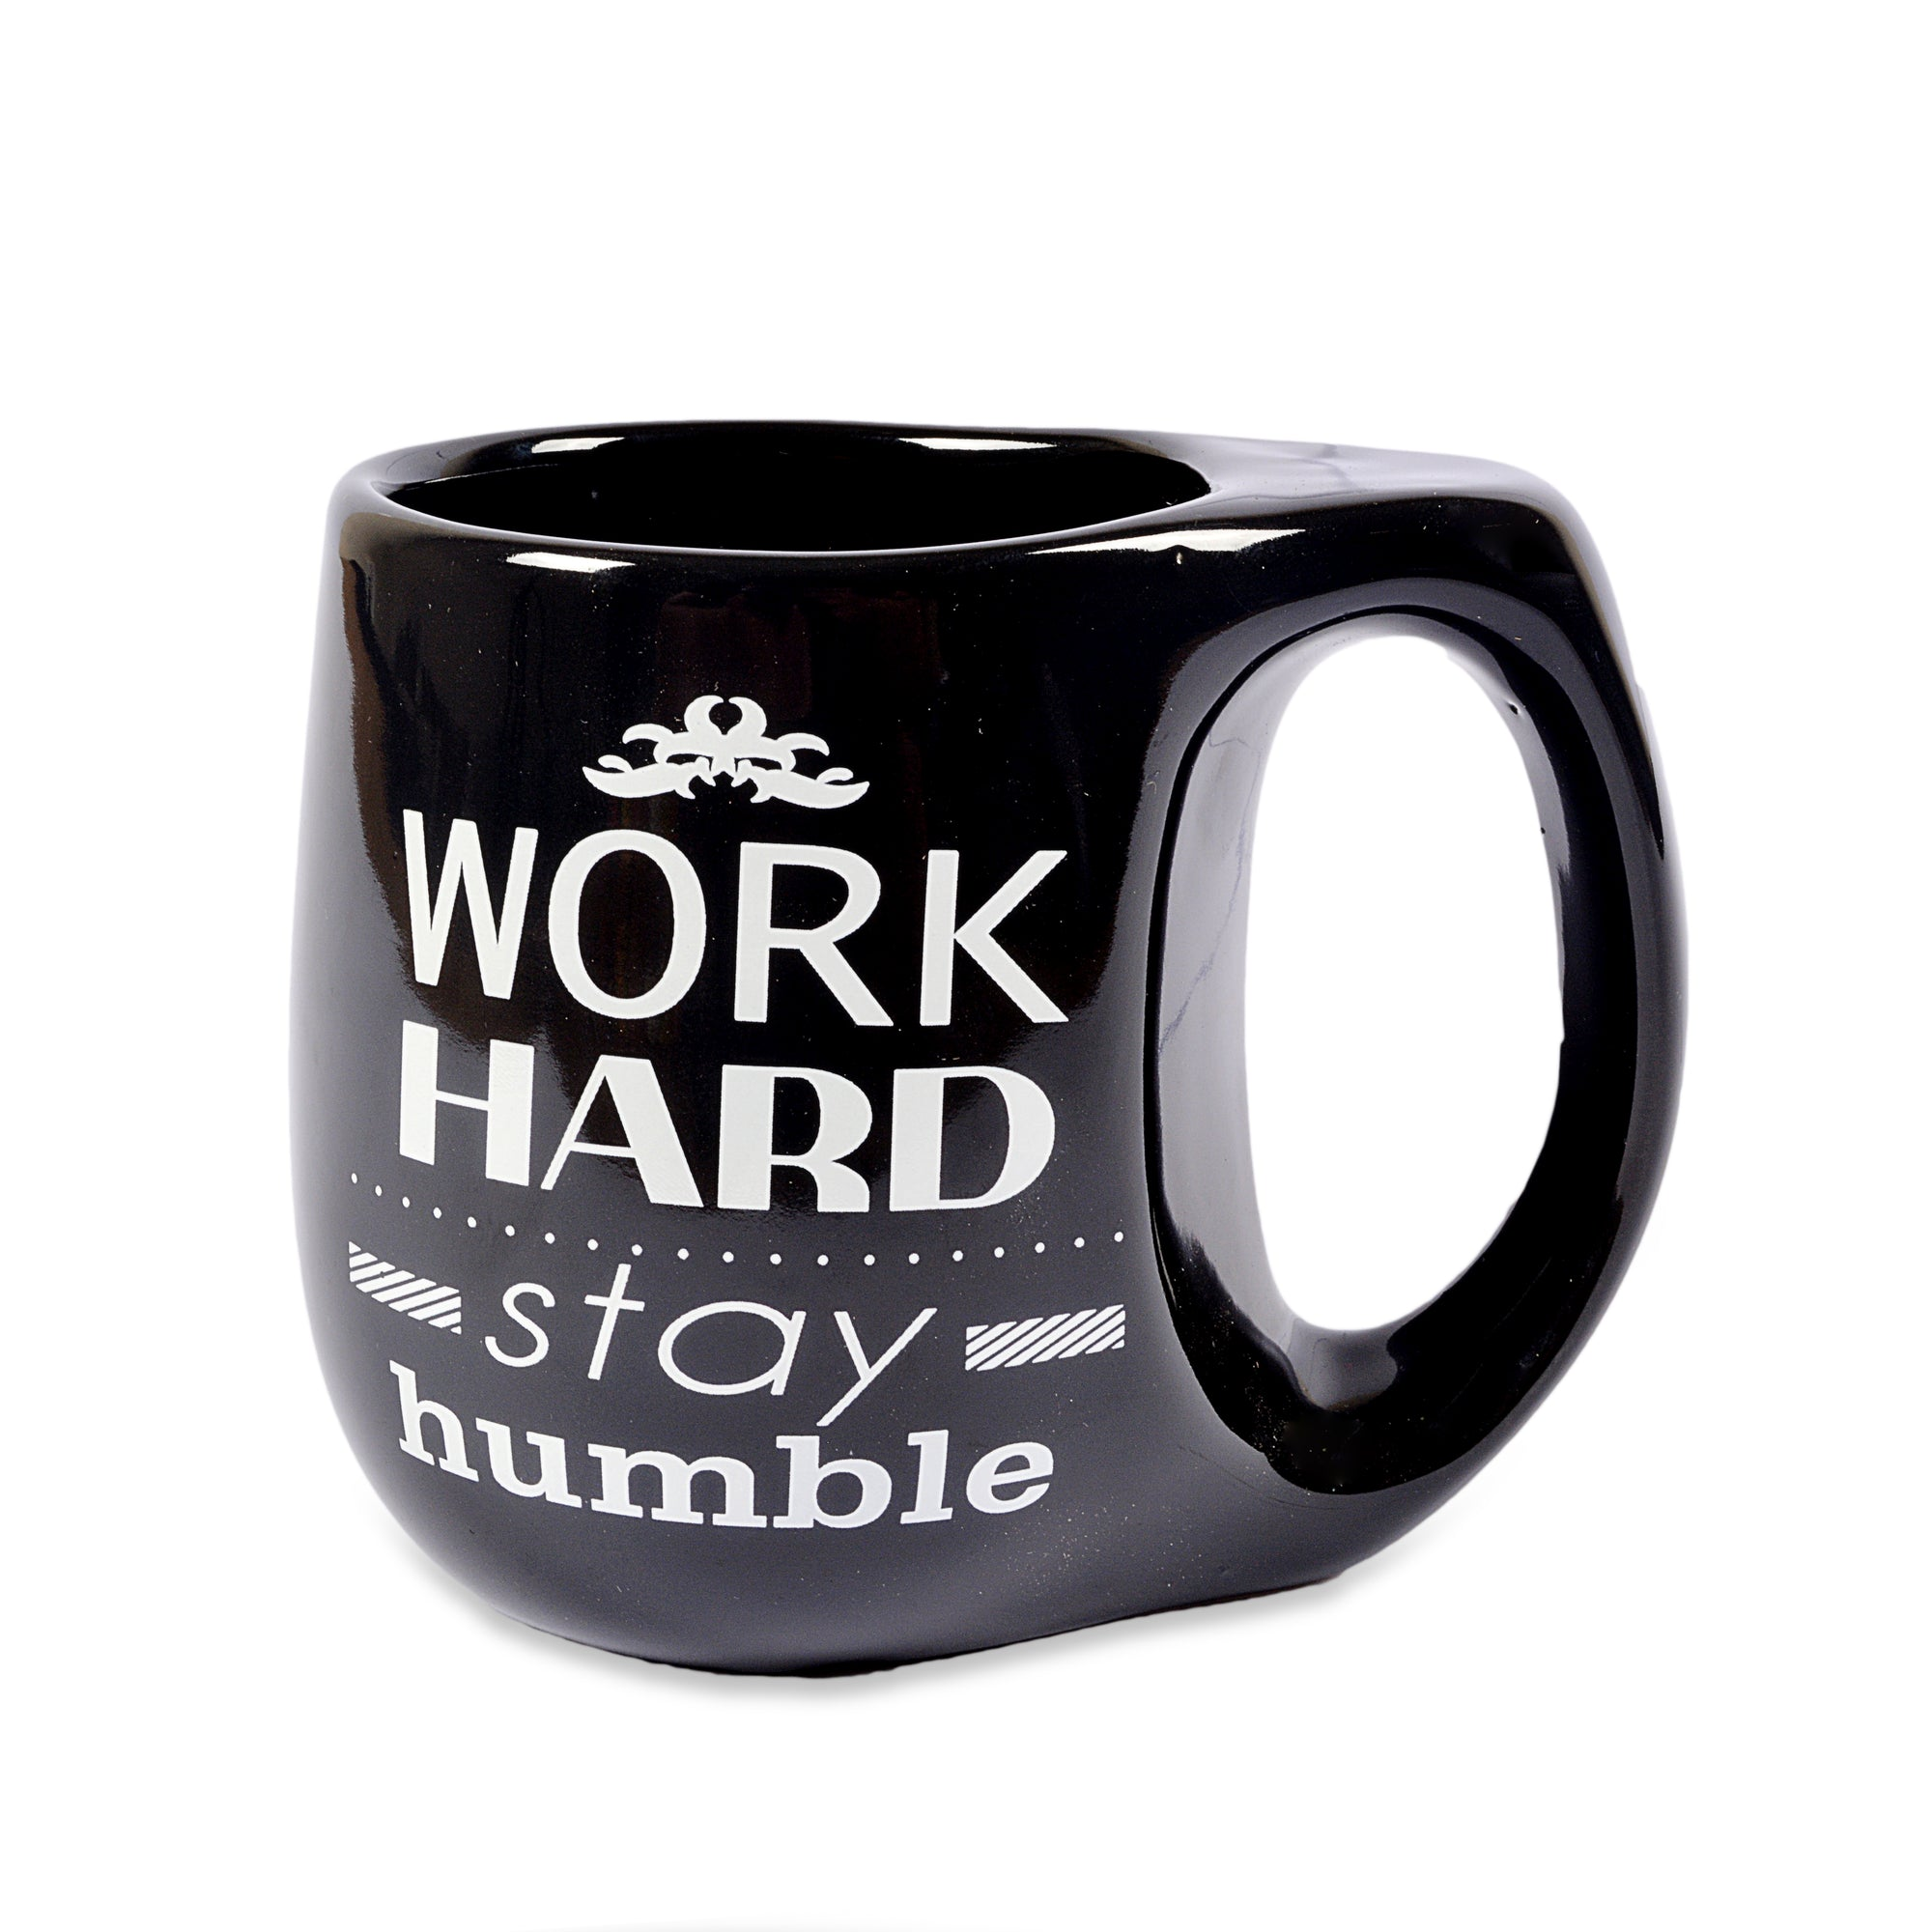 Work Hard Ceramic Mug